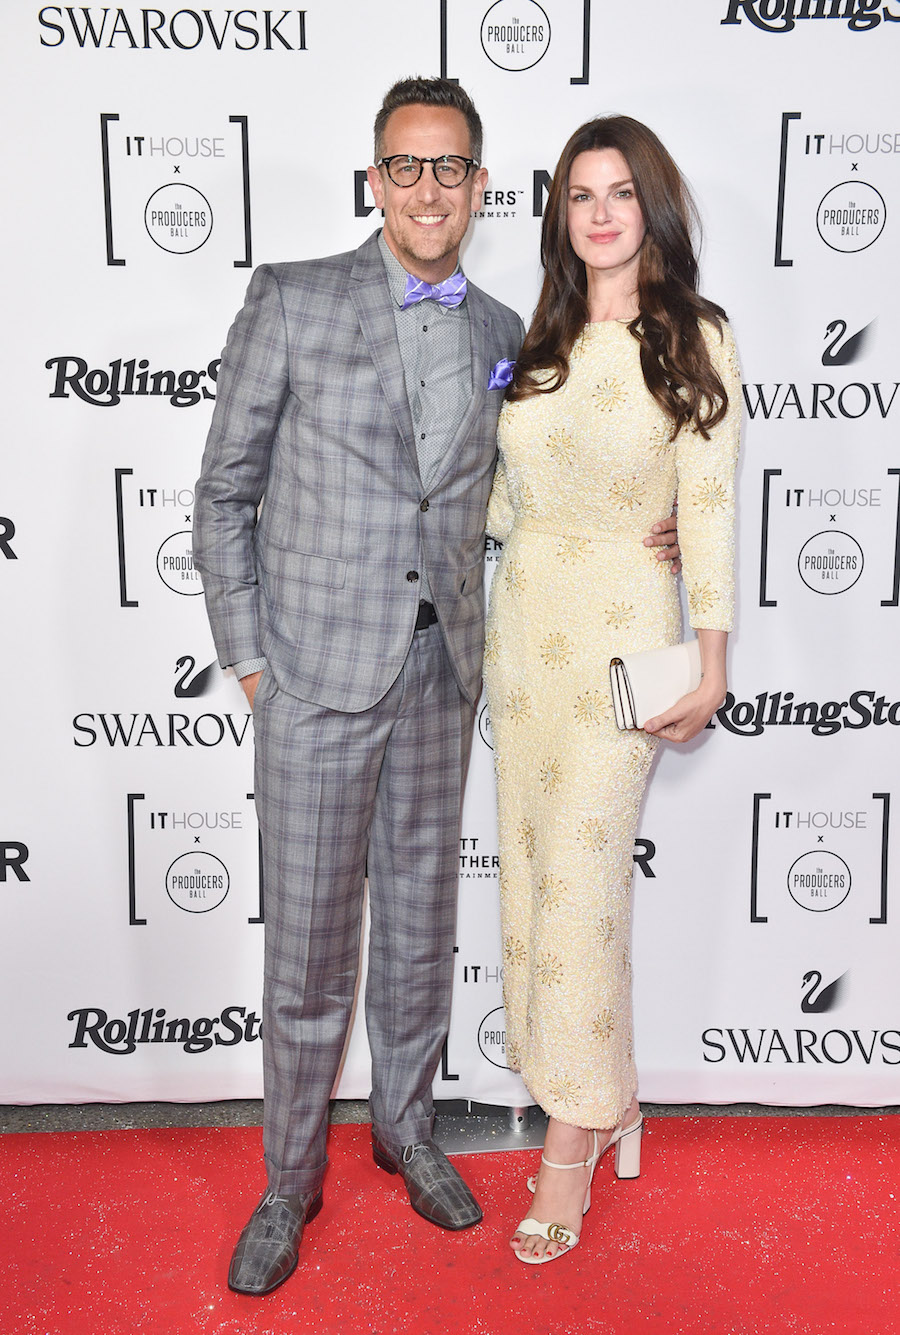 Noah Cappe & Keri West at the IT House x Producers Ball (Photo: Courtesy of NKPR)